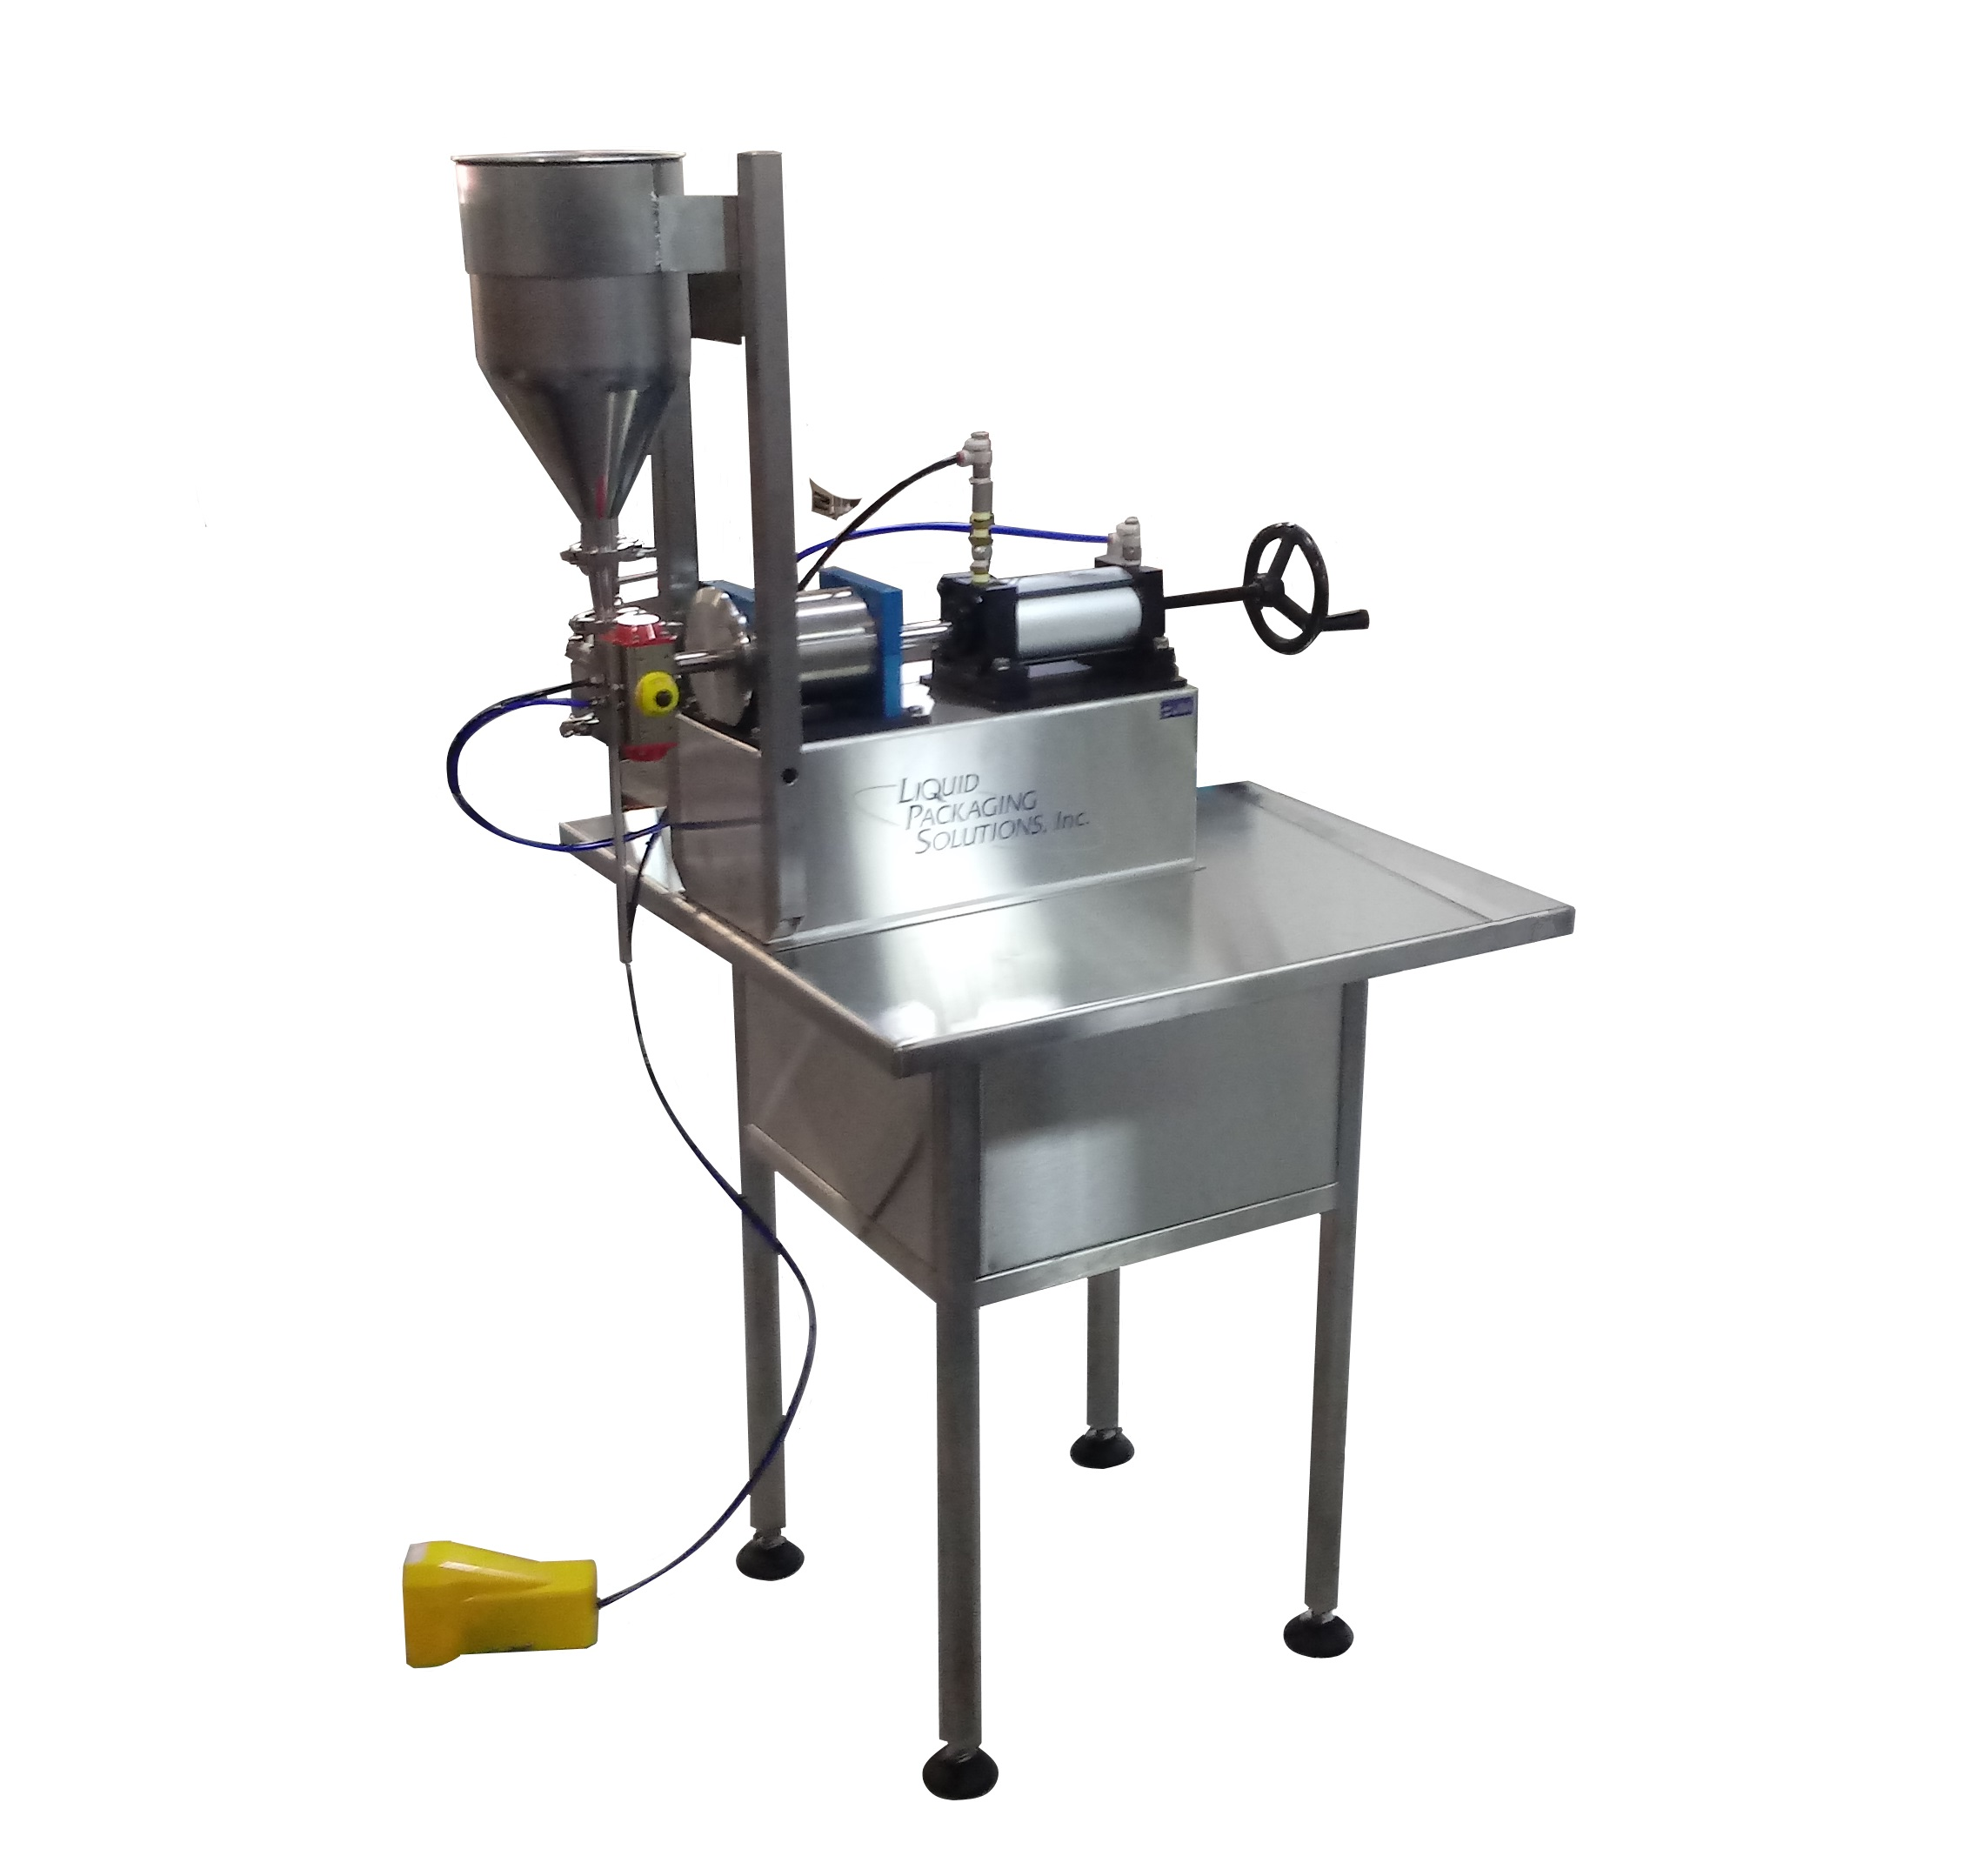 piston filling machines by liquid packaging solutions. Black Bedroom Furniture Sets. Home Design Ideas